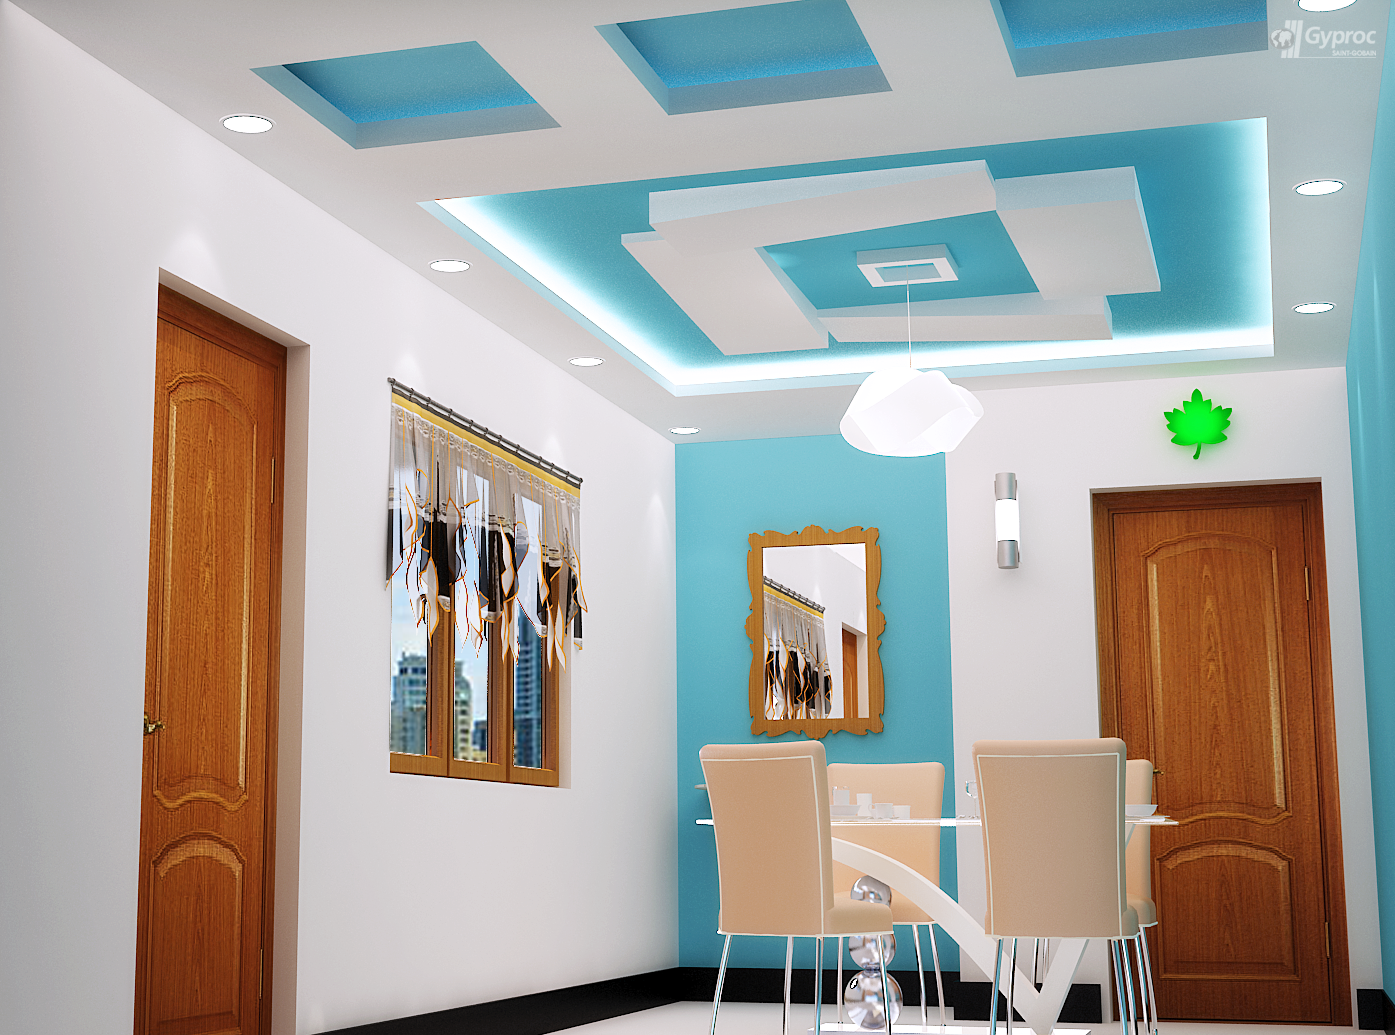 False ceiling designs for other rooms saint gobain for Latest drawing room design